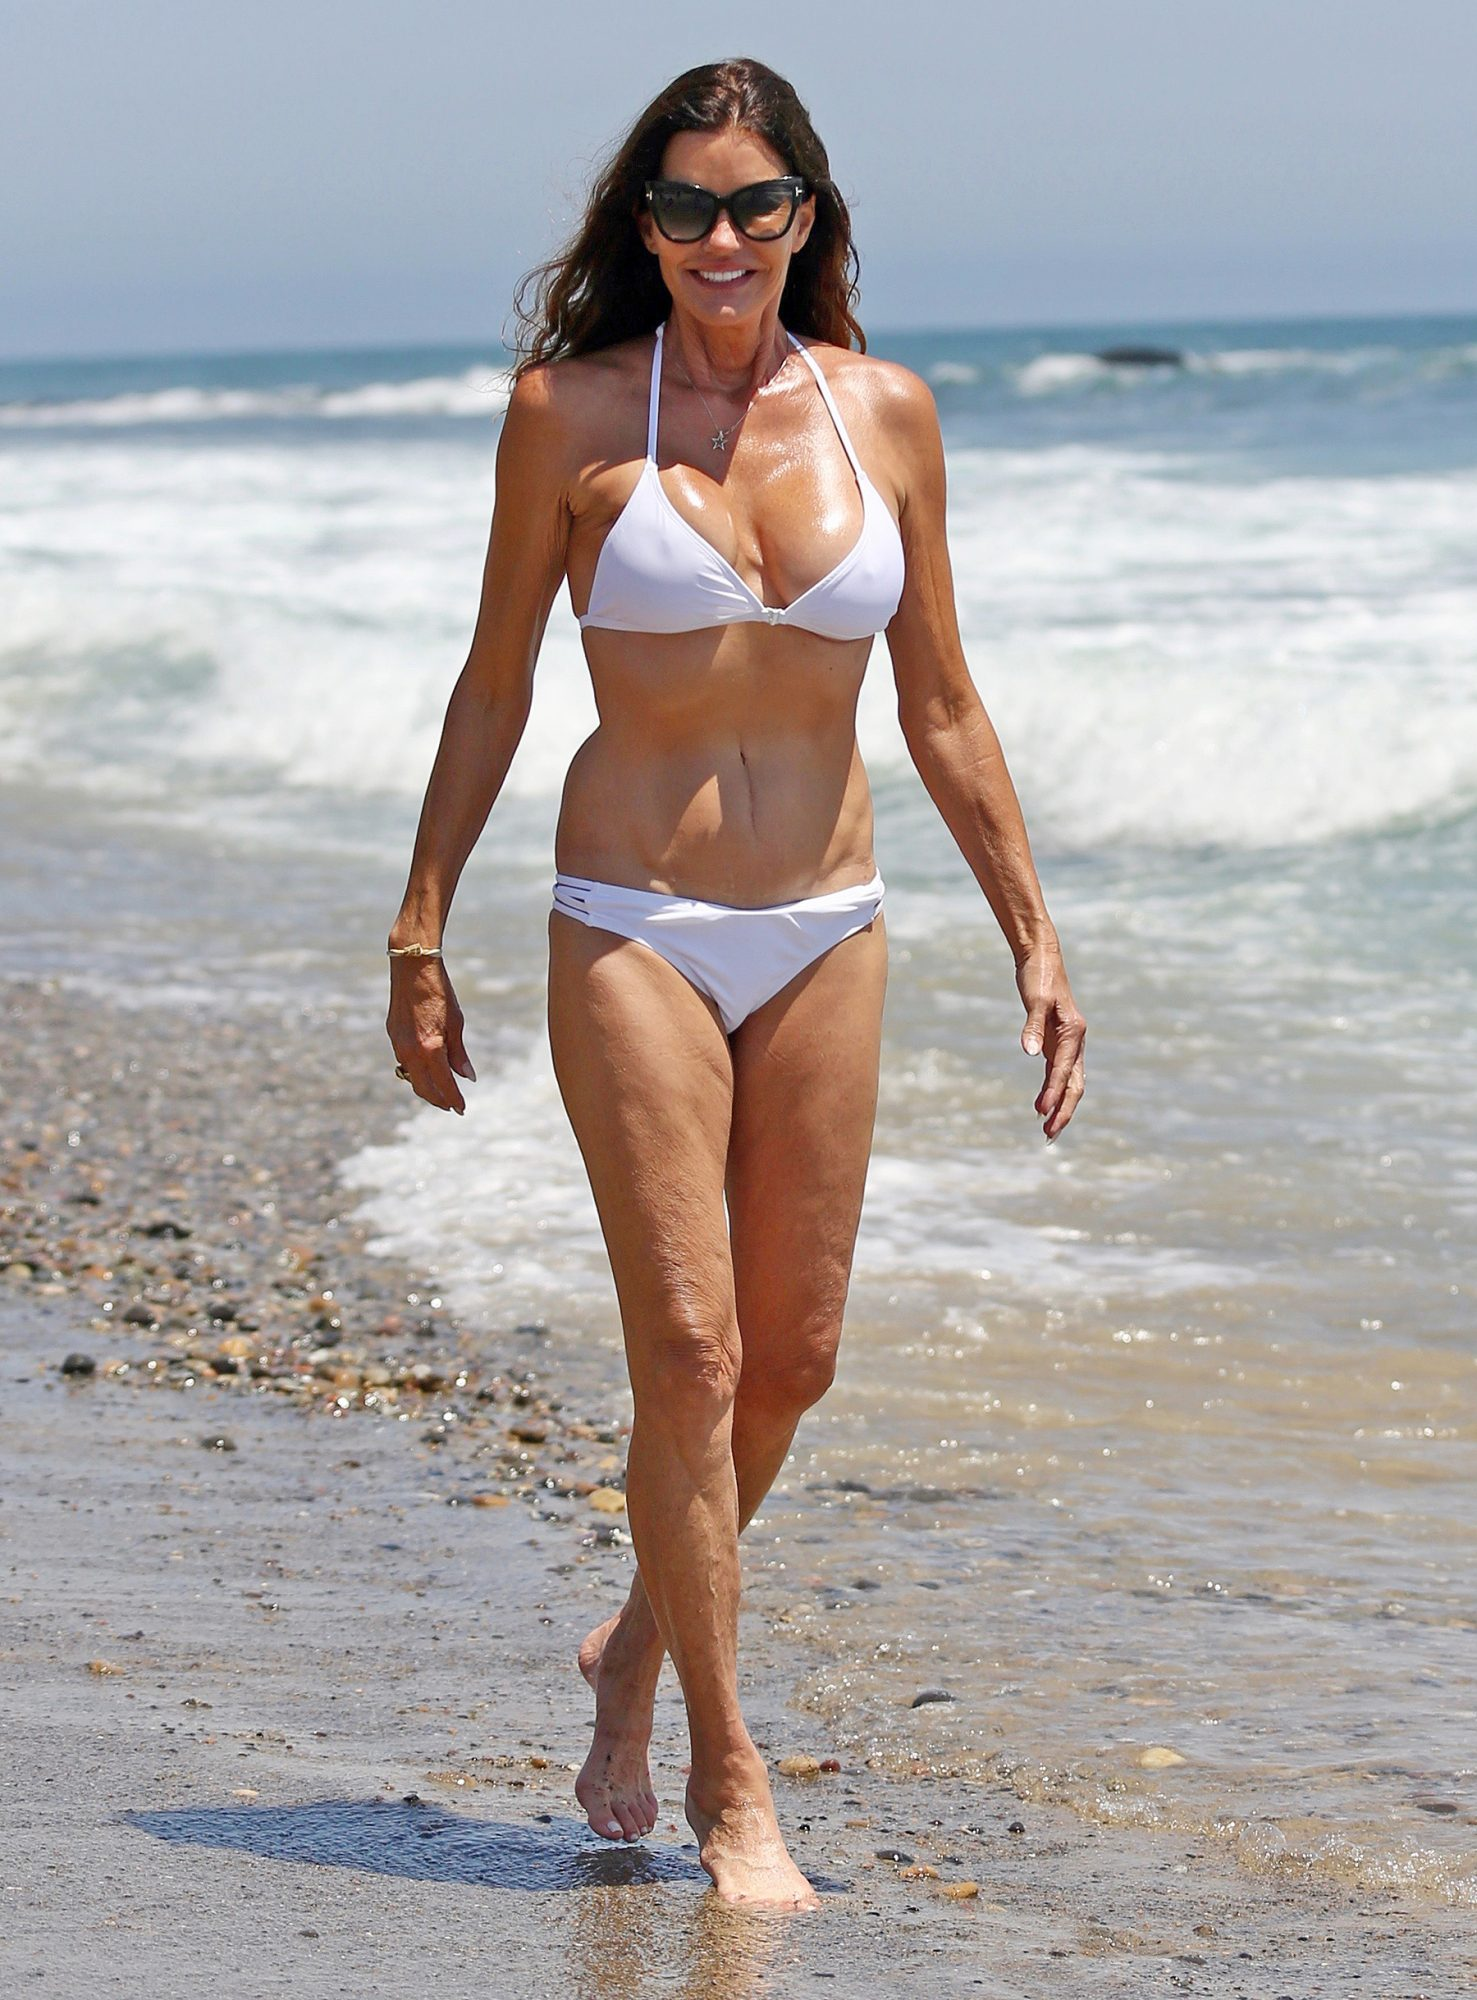 EXCLUSIVE: Janice Dickinson out on the Beach on Independence day in Malibu